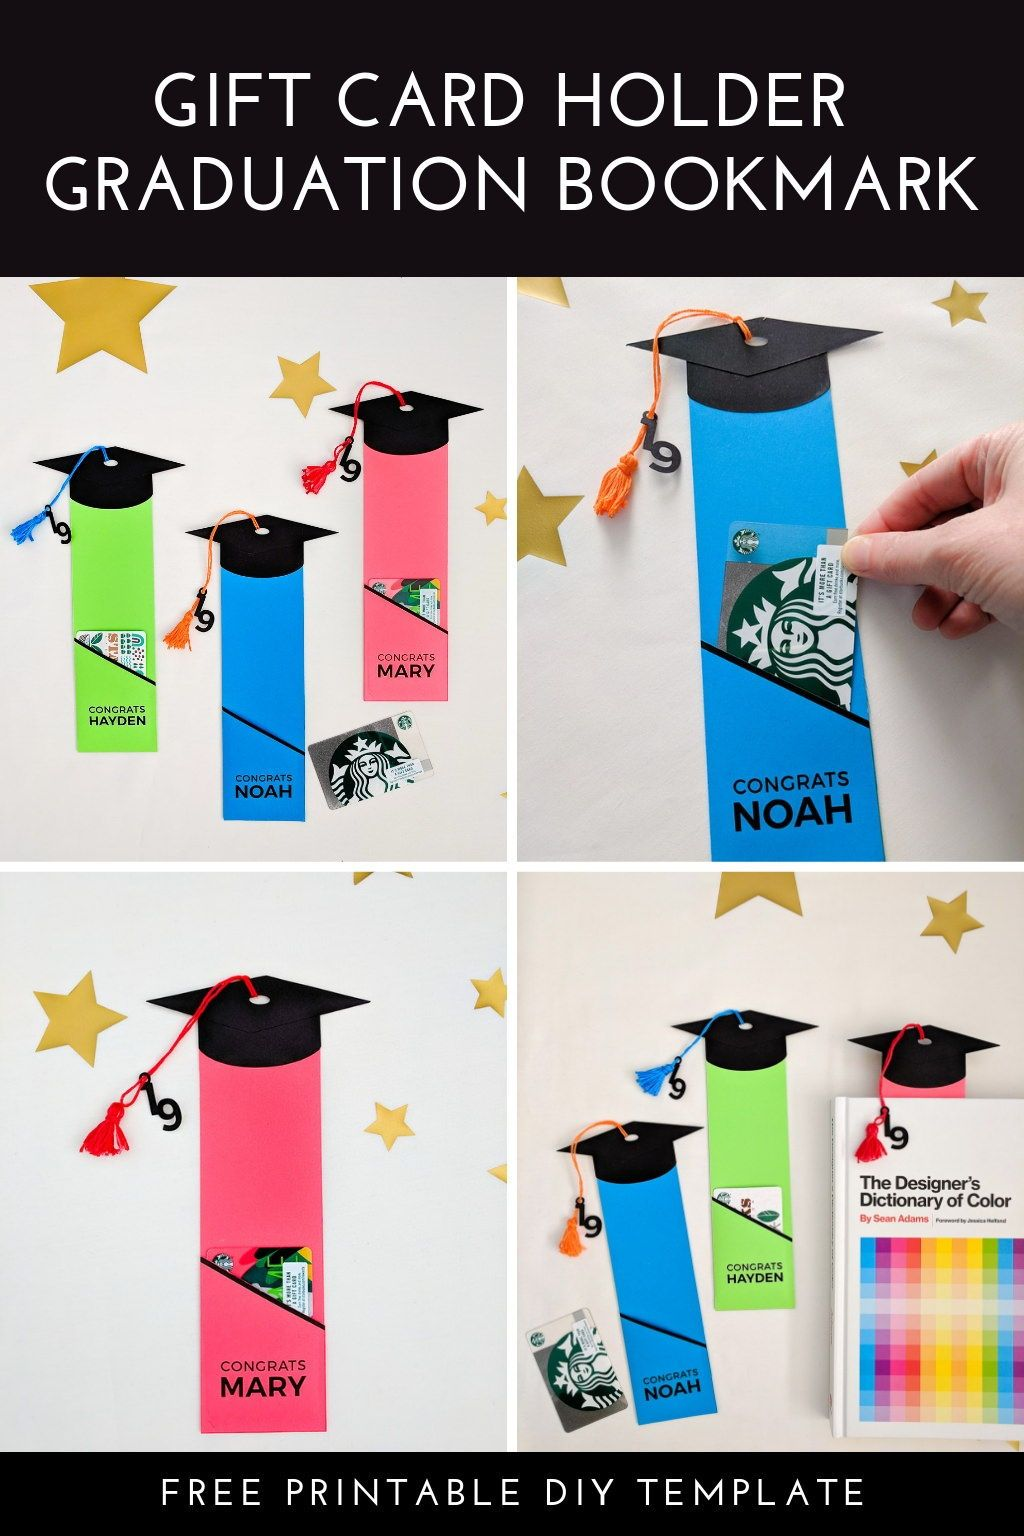 Graduation Gift Card Holder Free Printable Template